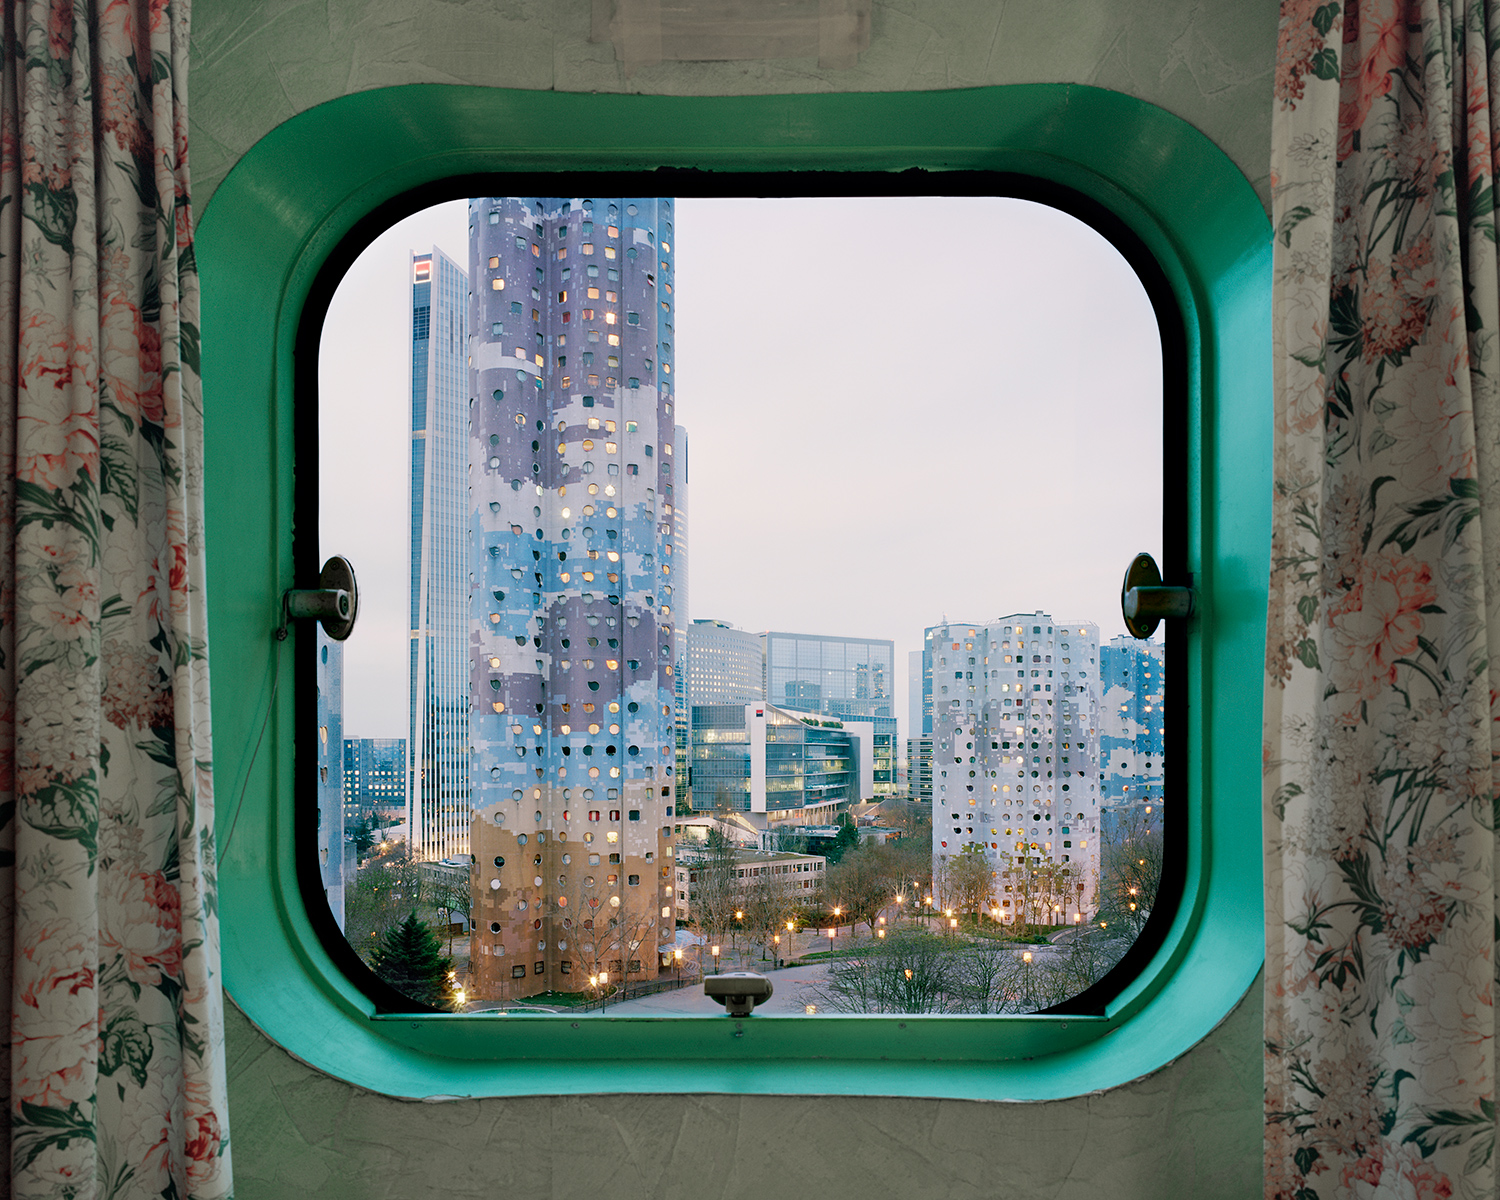 Futuristic Portholes Capture the View from France's Aging 'Tours Aillaud' Apartment Towers